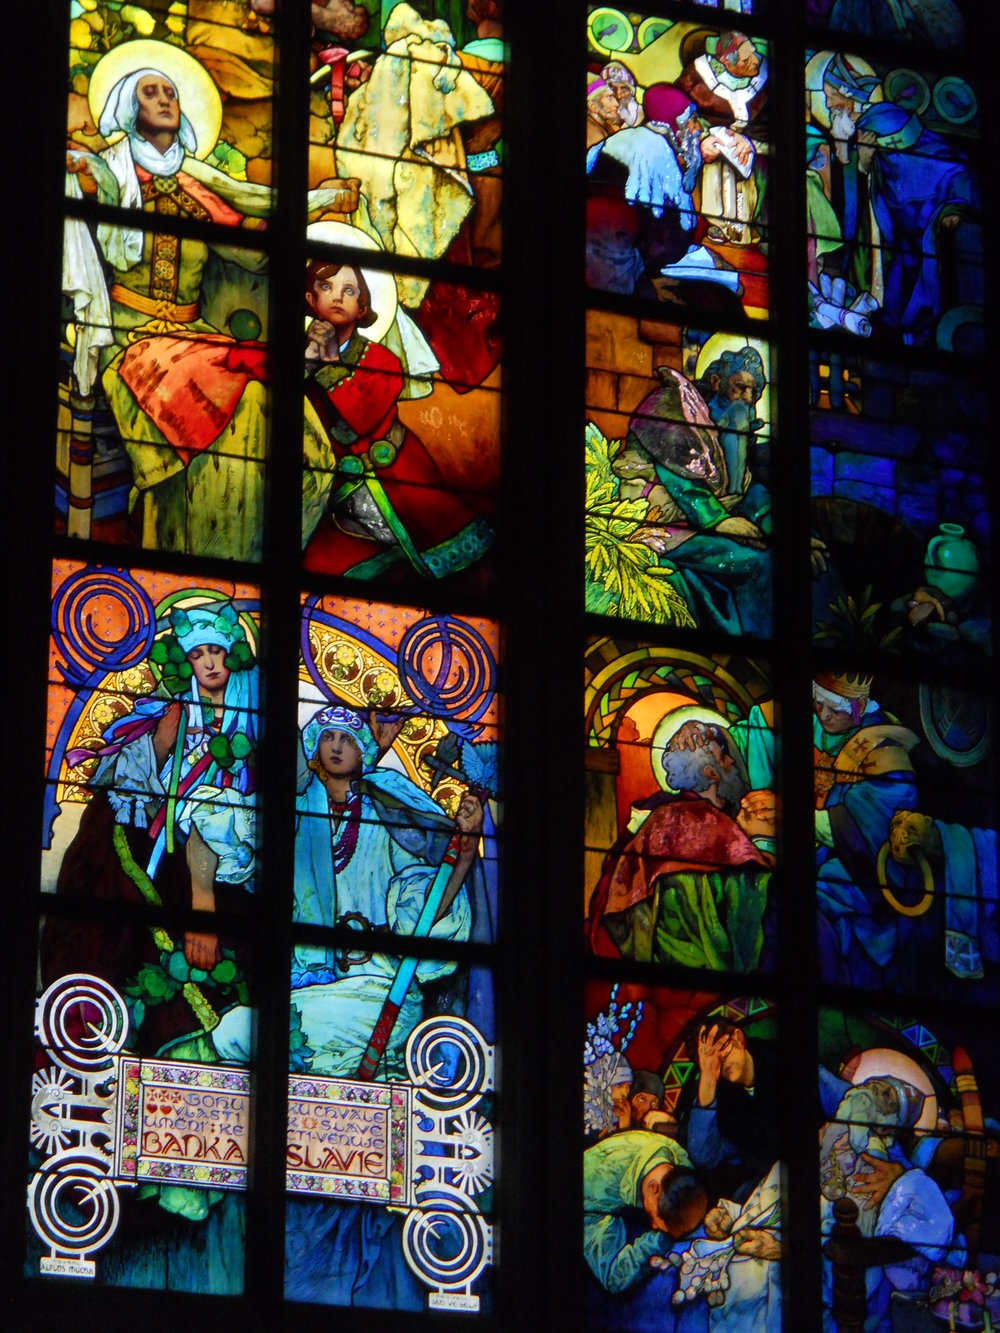 Mucha Stained Glass, St. Vitus Cathedral, Prague, Czech Republic